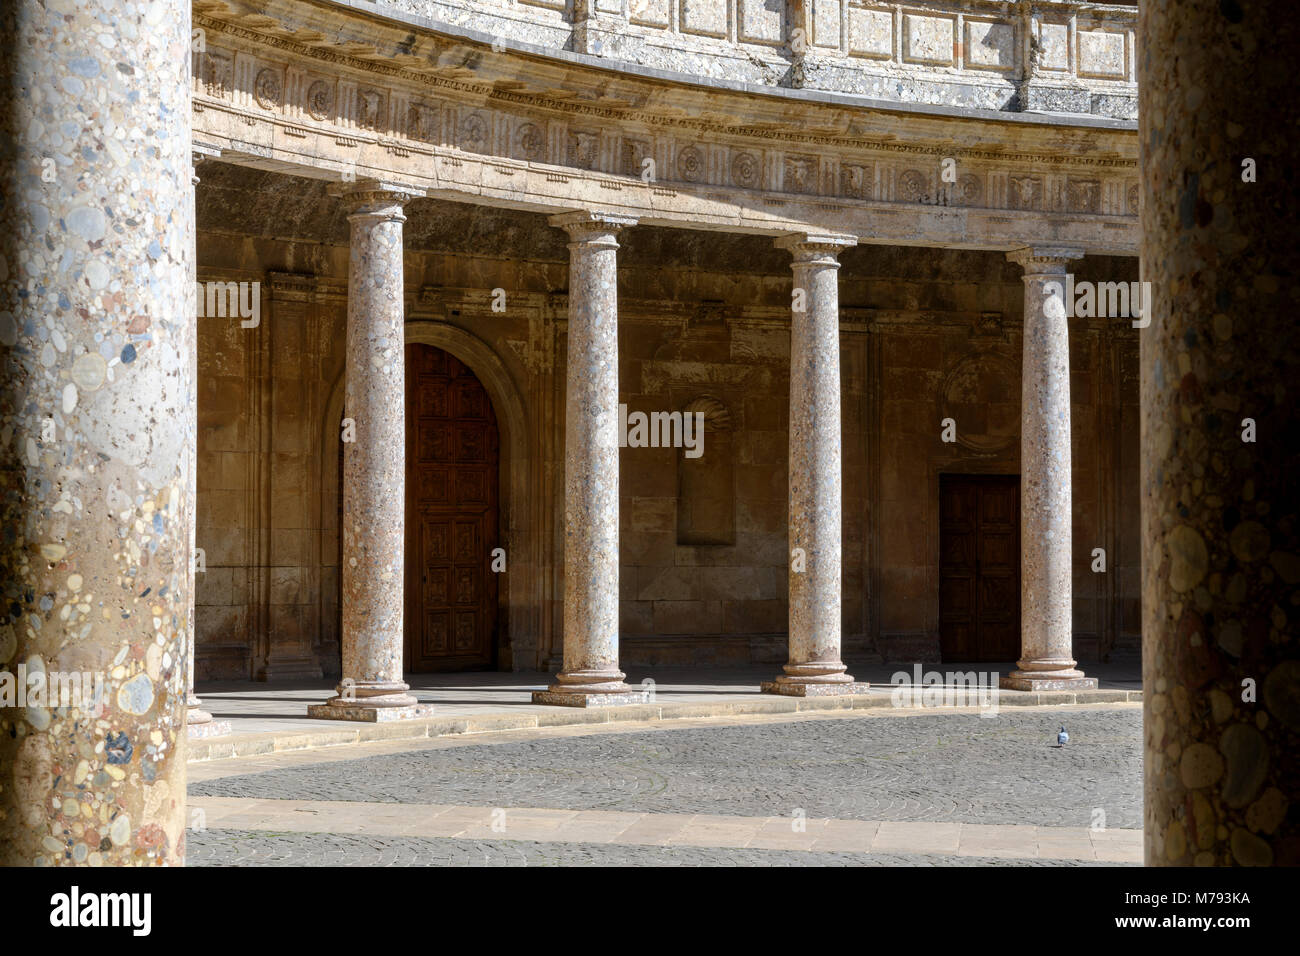 Courtyard of Carlos V Palace (La Alhambra) Granada. Spain. Stock Photo